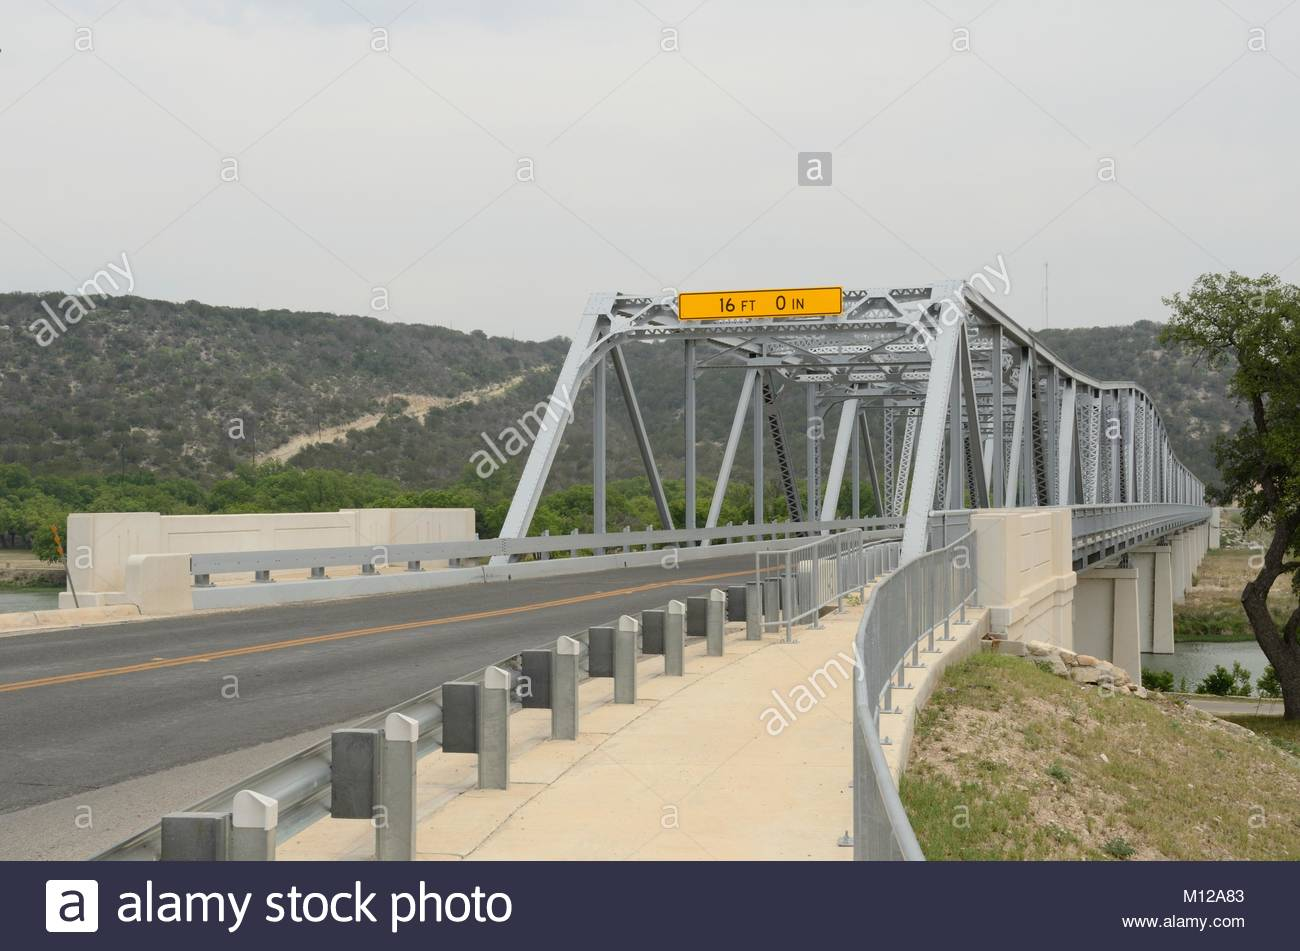 South Llano River Bridge, Junction Texas. This Texas Historic Bridge is listed on the National Register of Historic - Stock Image